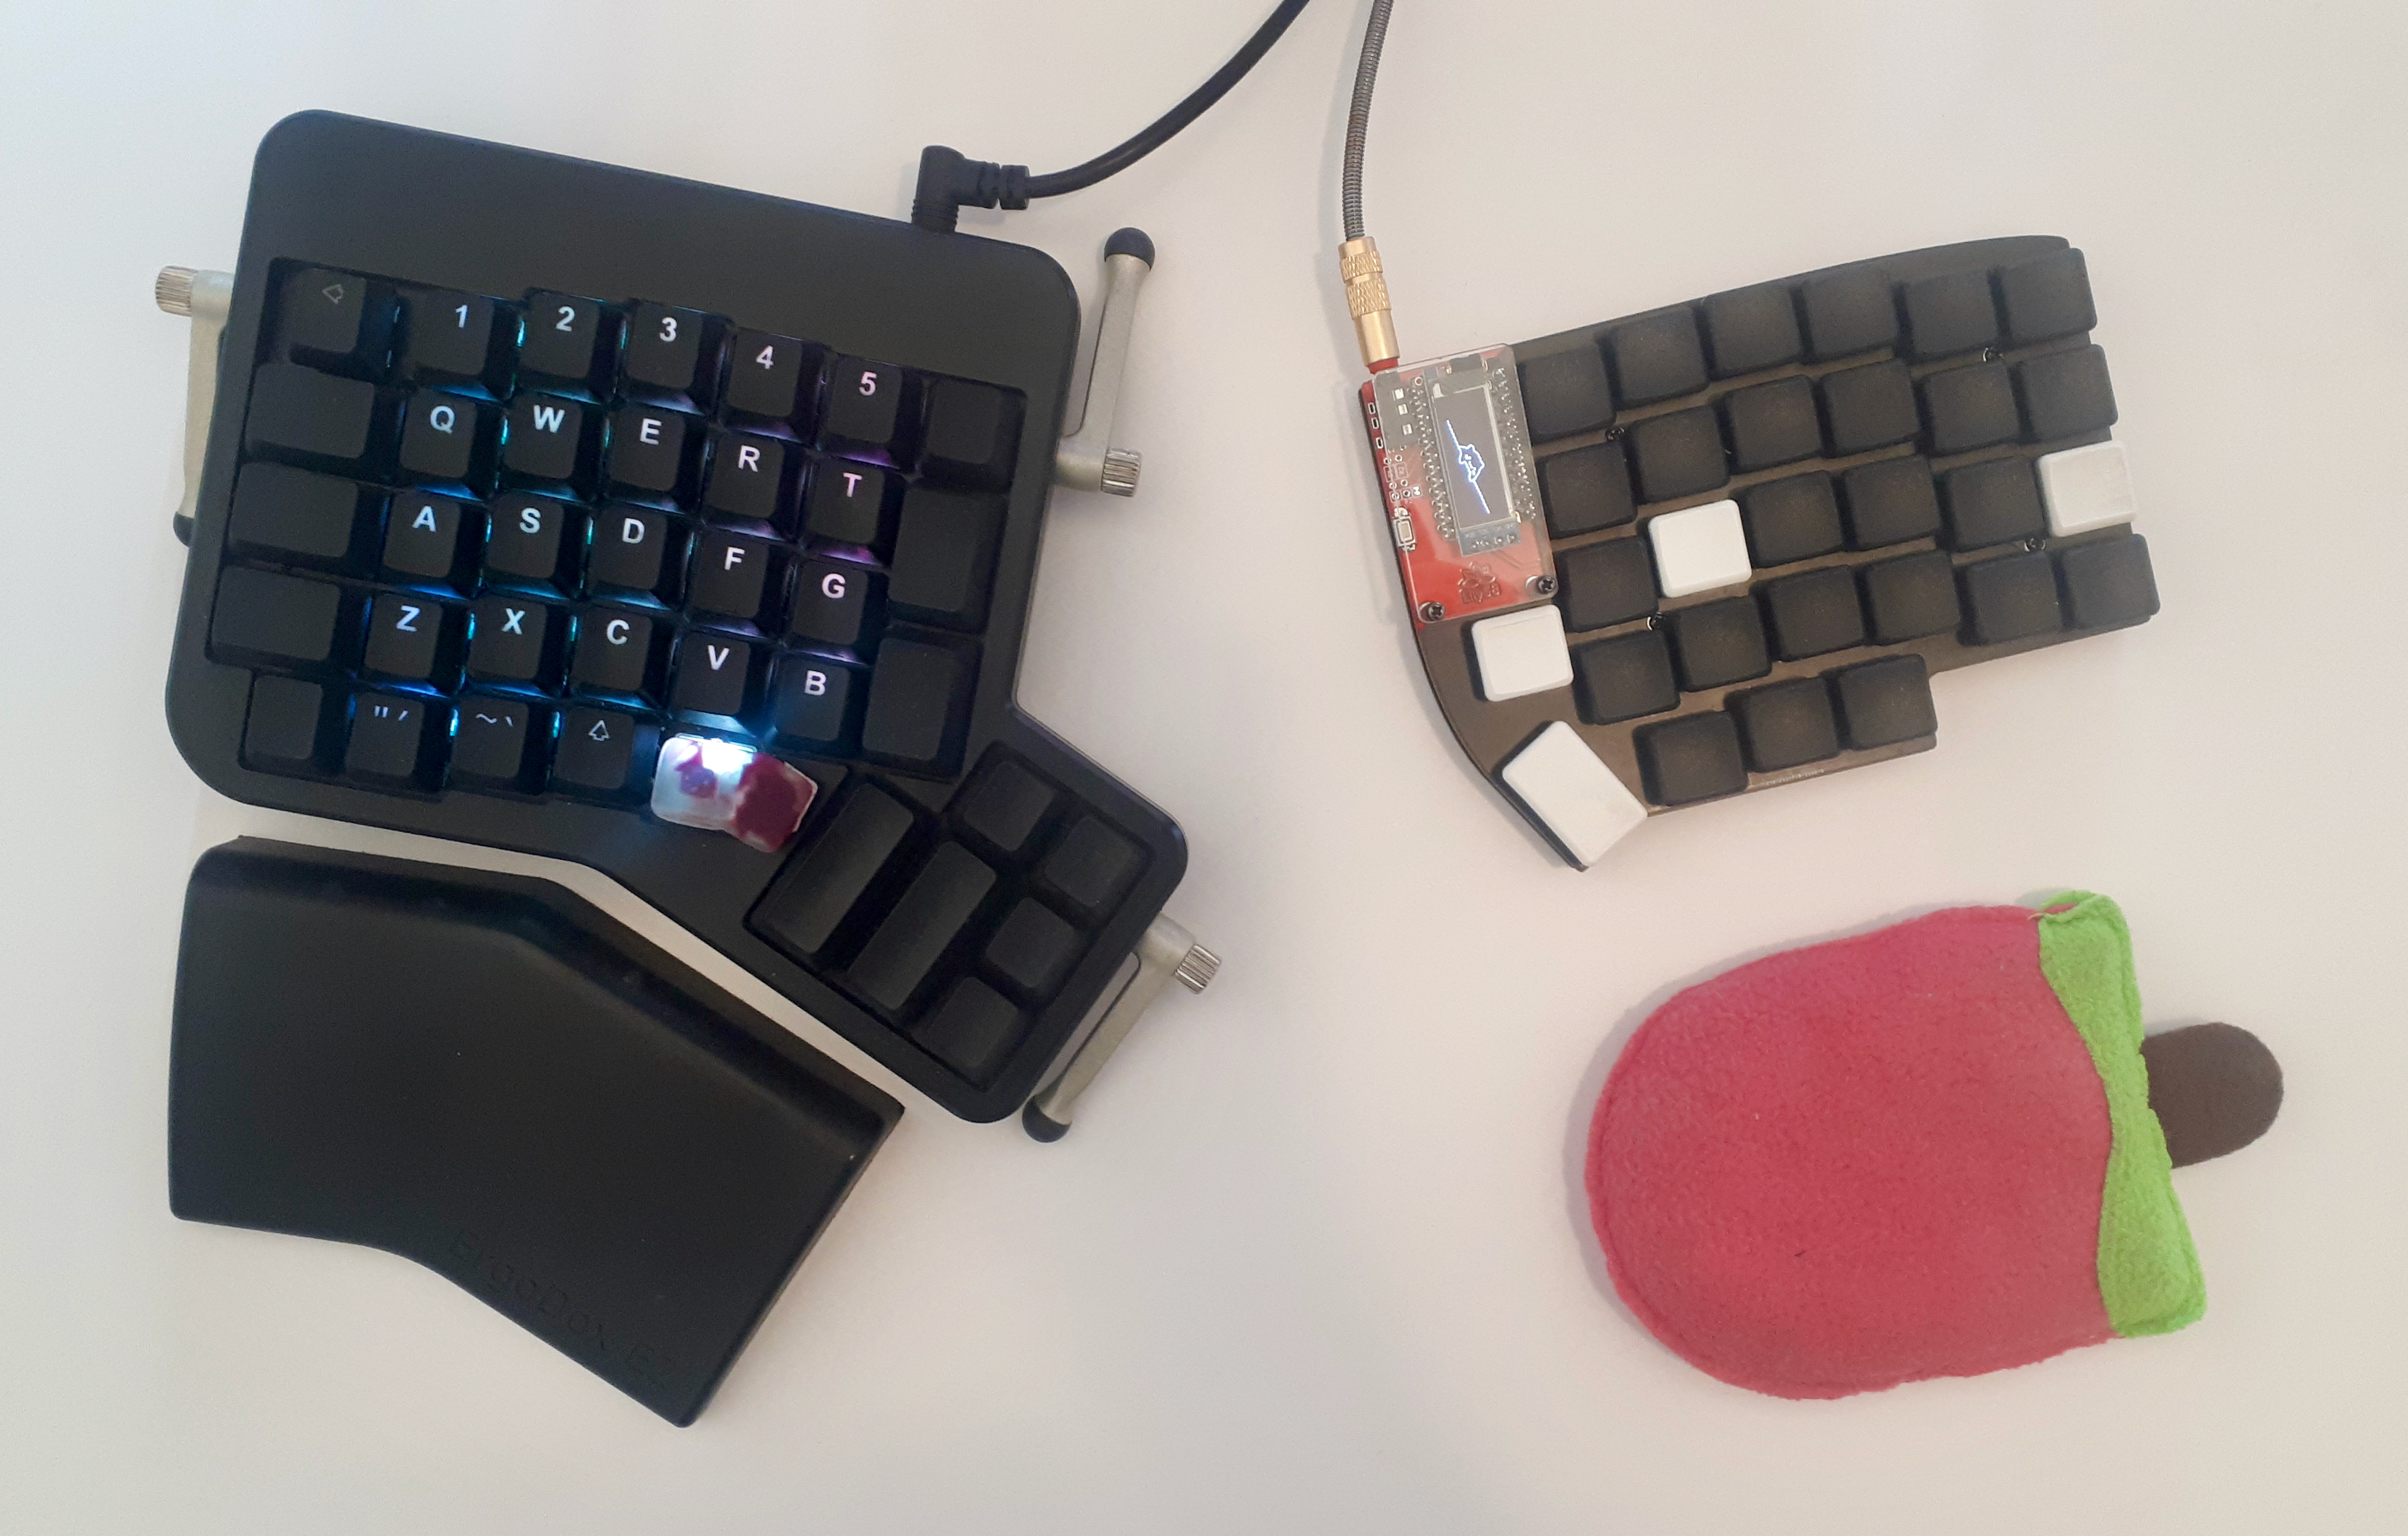 Lily58 next to an Ergodox. Lily58 is smaller.